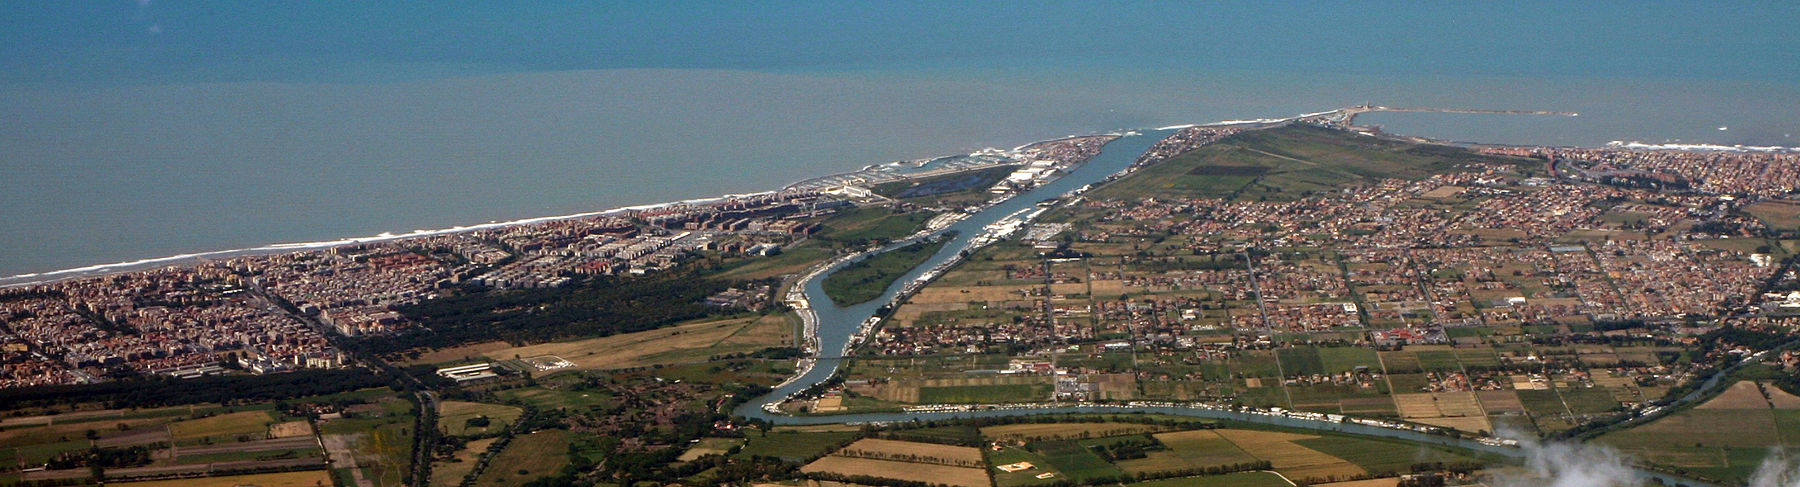 The river mouth of the Tiber and city of Fiumicino on the Tyrrhenian Sea Comune di Fiumicino and the Tiber River, near Rome.jpg